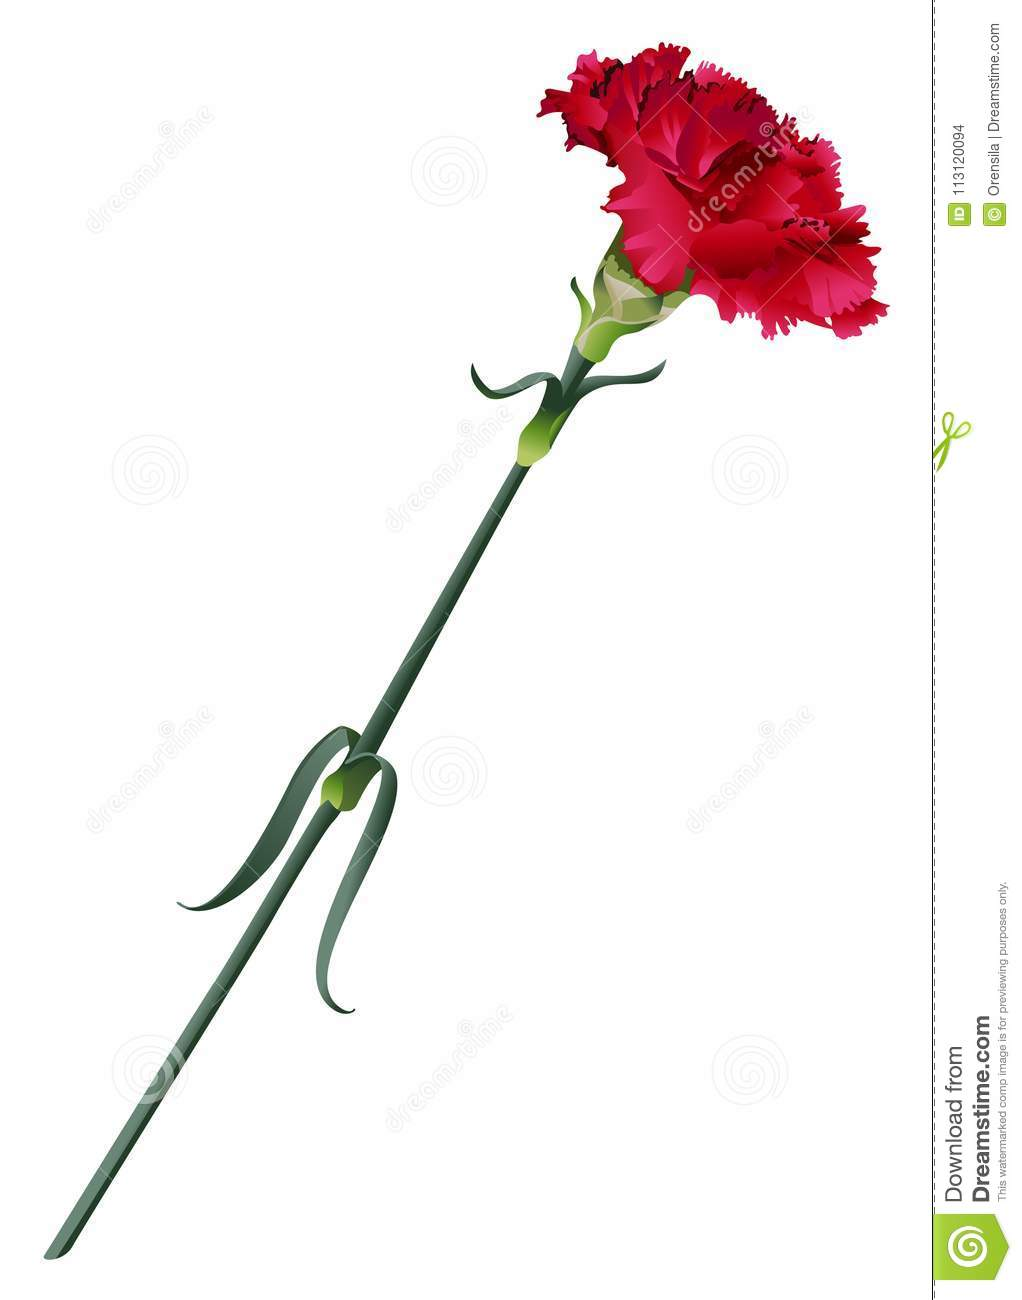 Red Carnation Flower Vector Illustration Isolated On White Stock